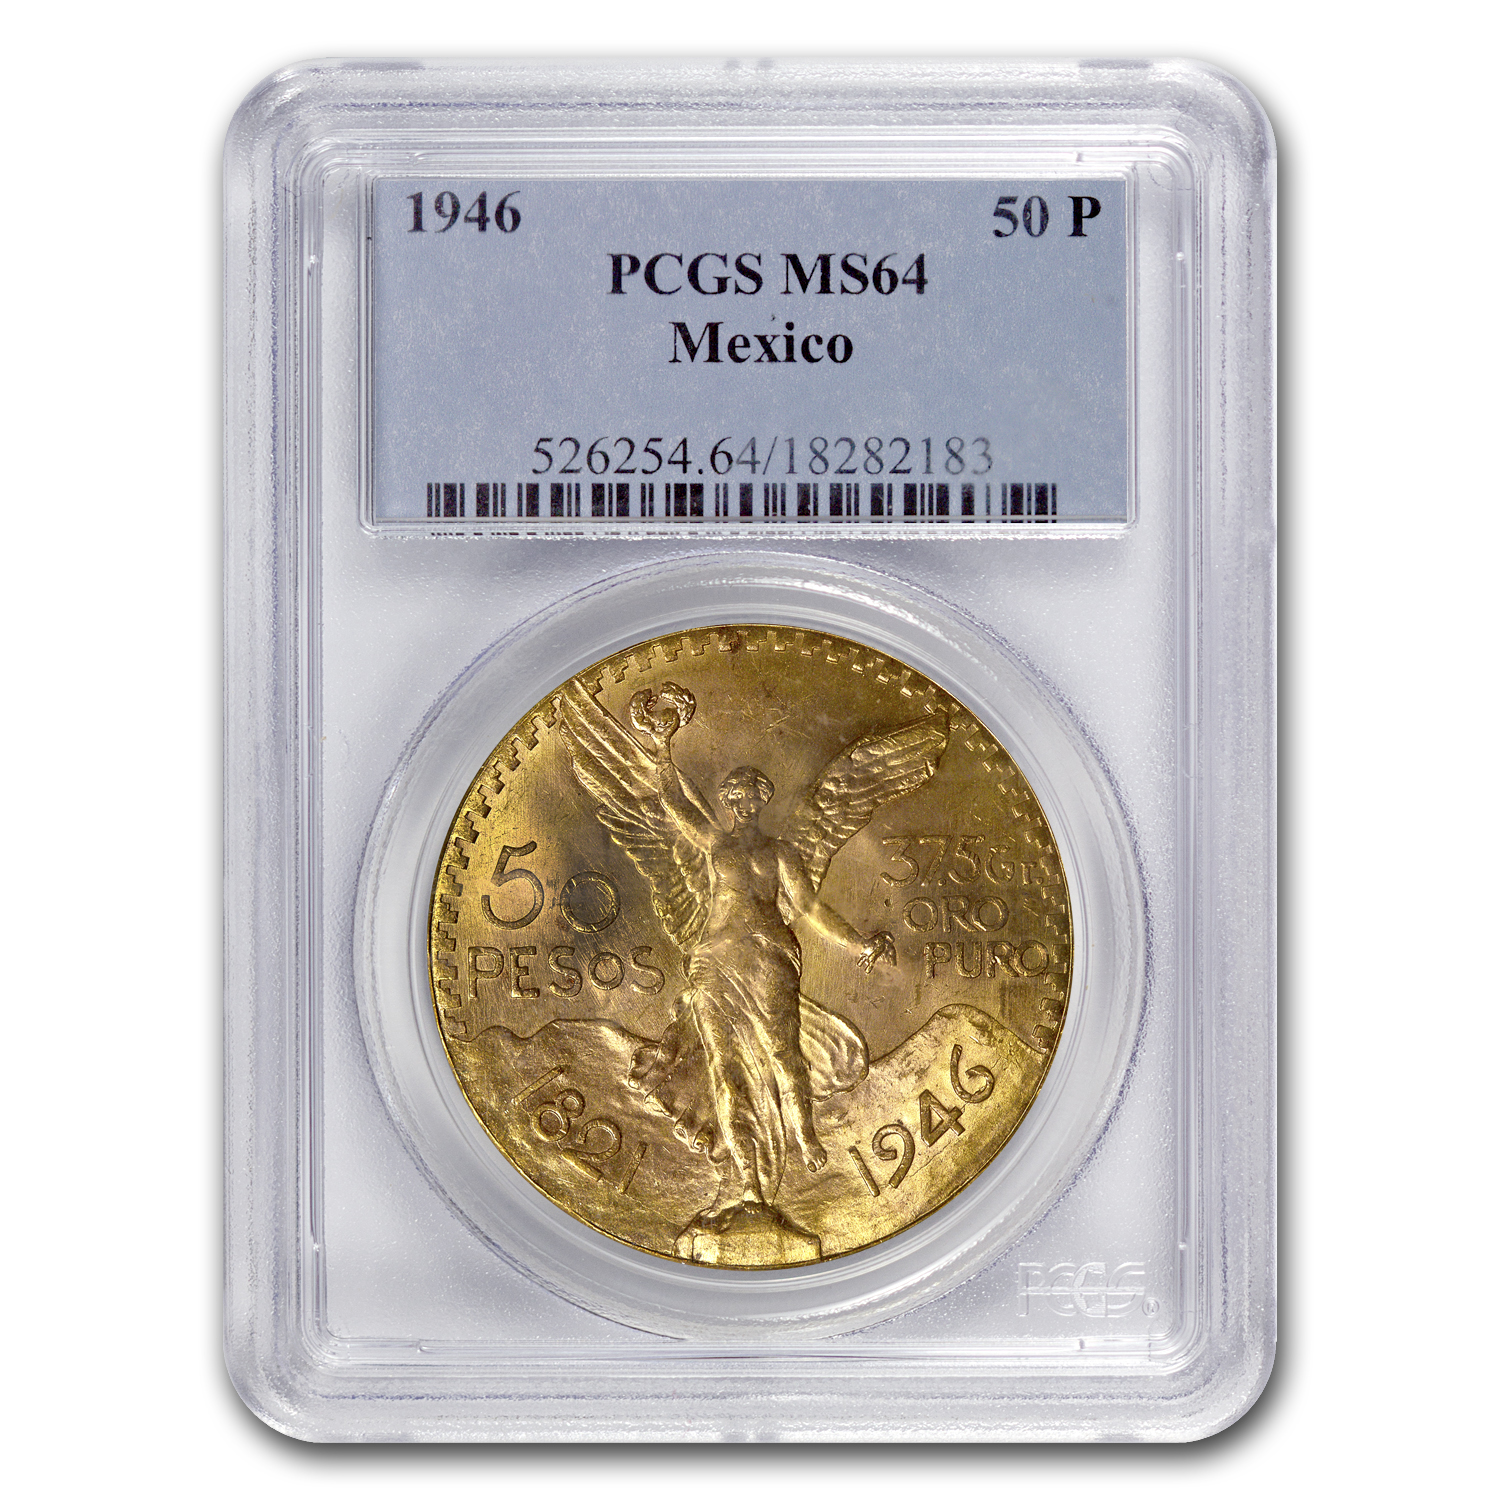 1946 Mexico 50 Pesos Gold MS-64 PCGS